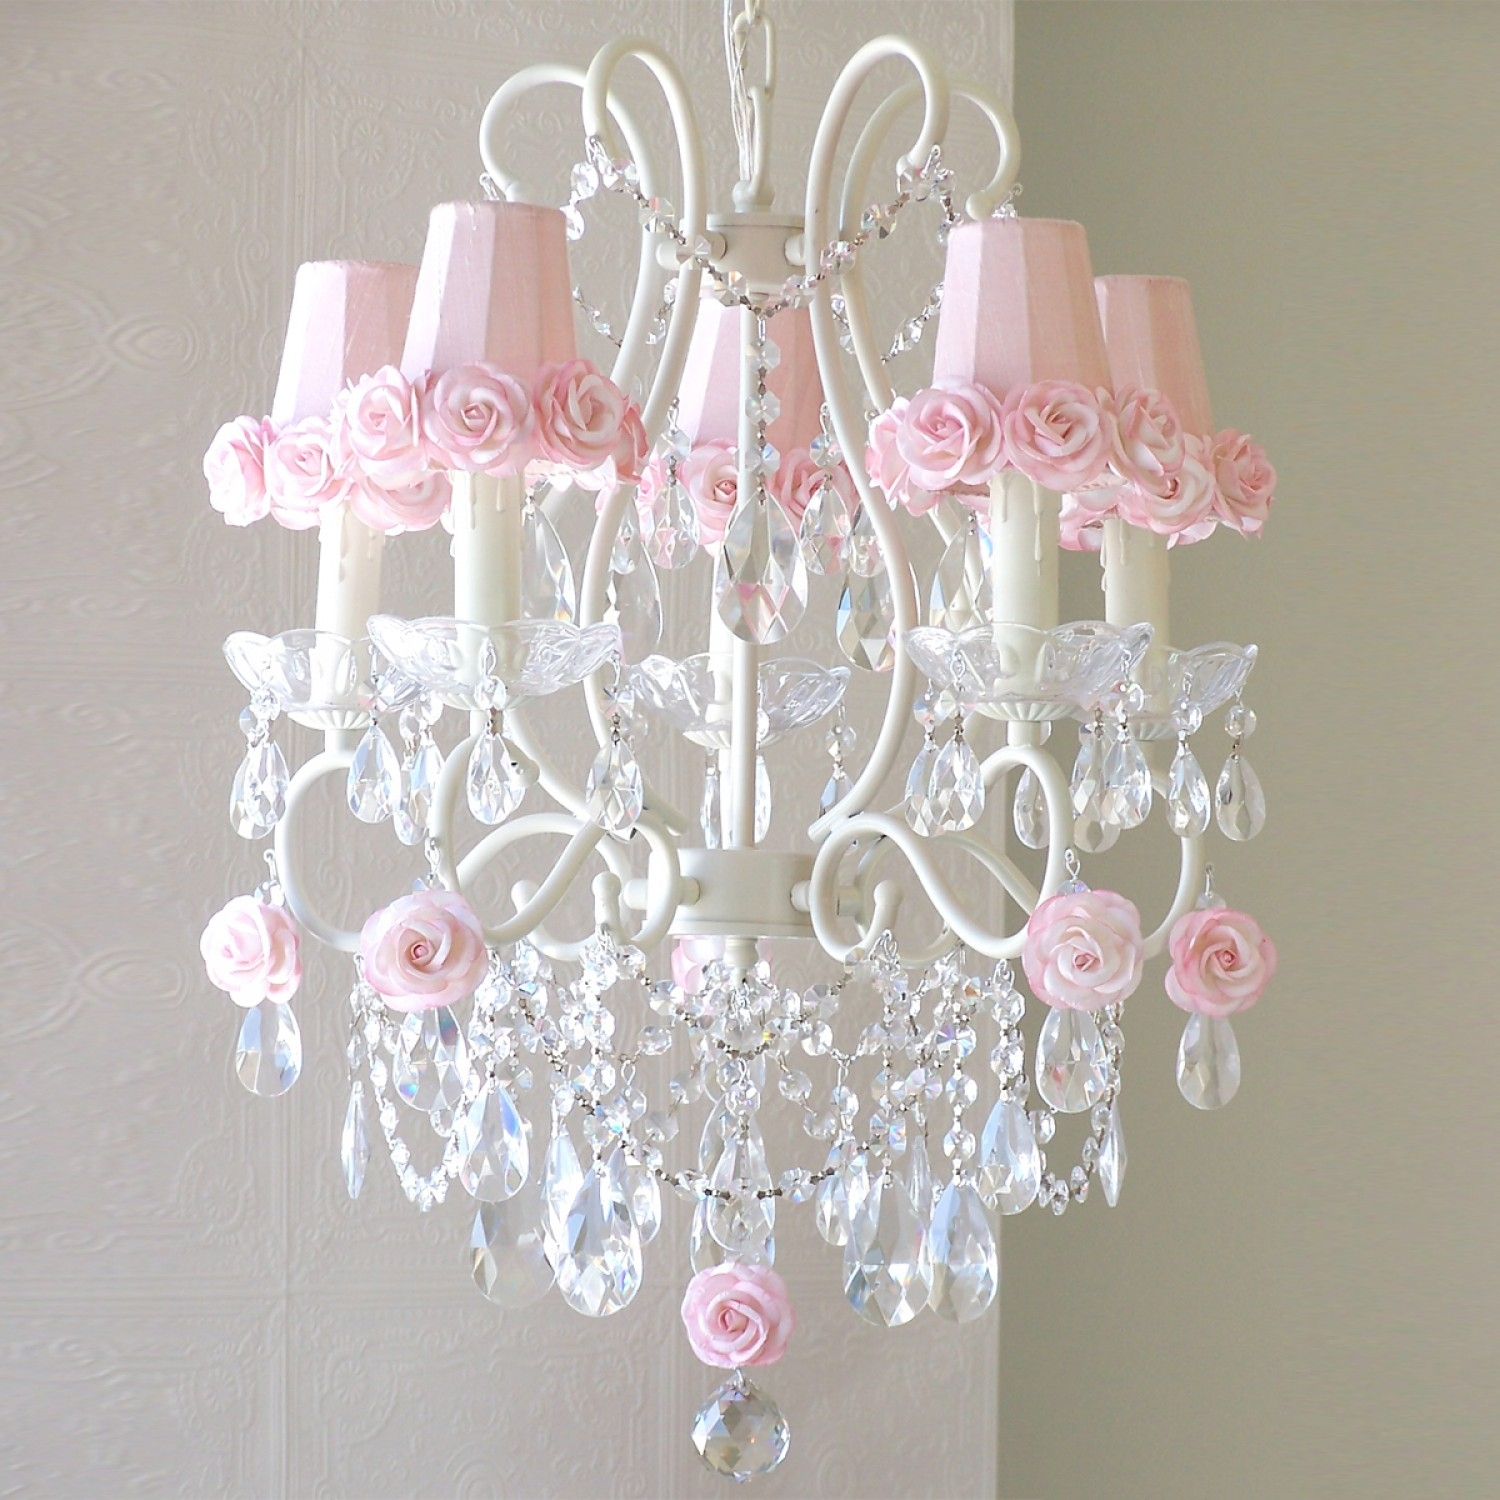 The Best Chandelier Lamp Shades Best Home Decor Inspirations With Regard To Chandelier Lamp Shades (Image 23 of 25)